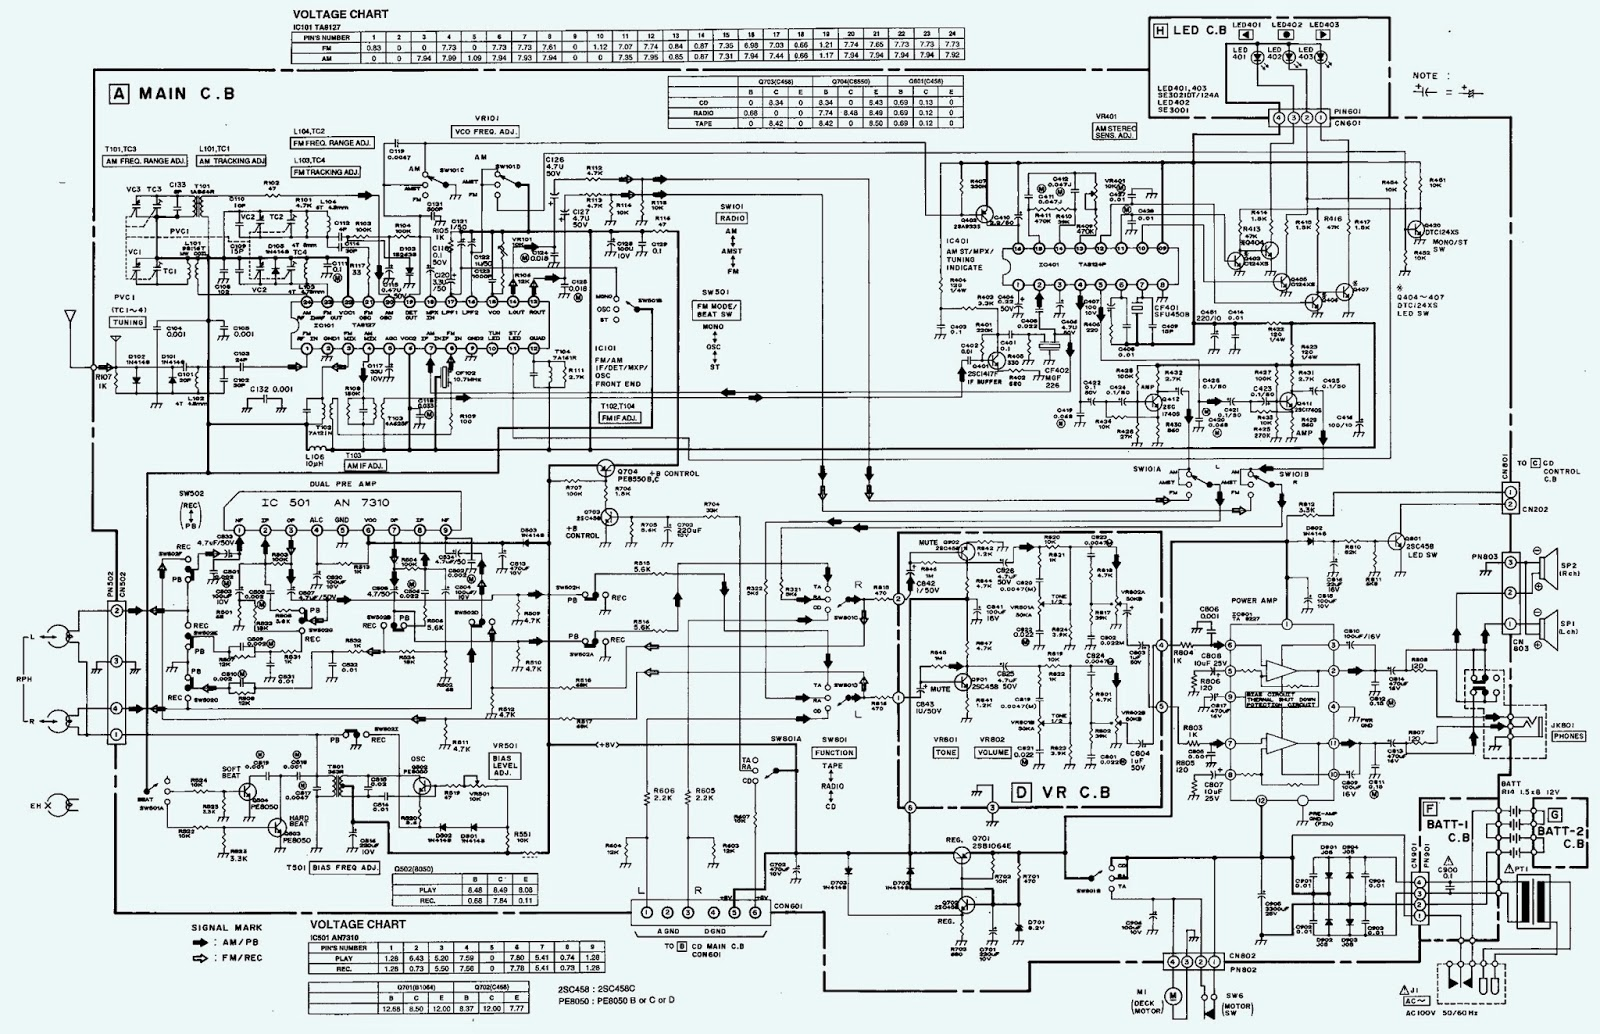 2.bmp aiwa csd ex110 schematic (circuit diagram) electro help aiwa cdc-x144 wiring diagram at aneh.co